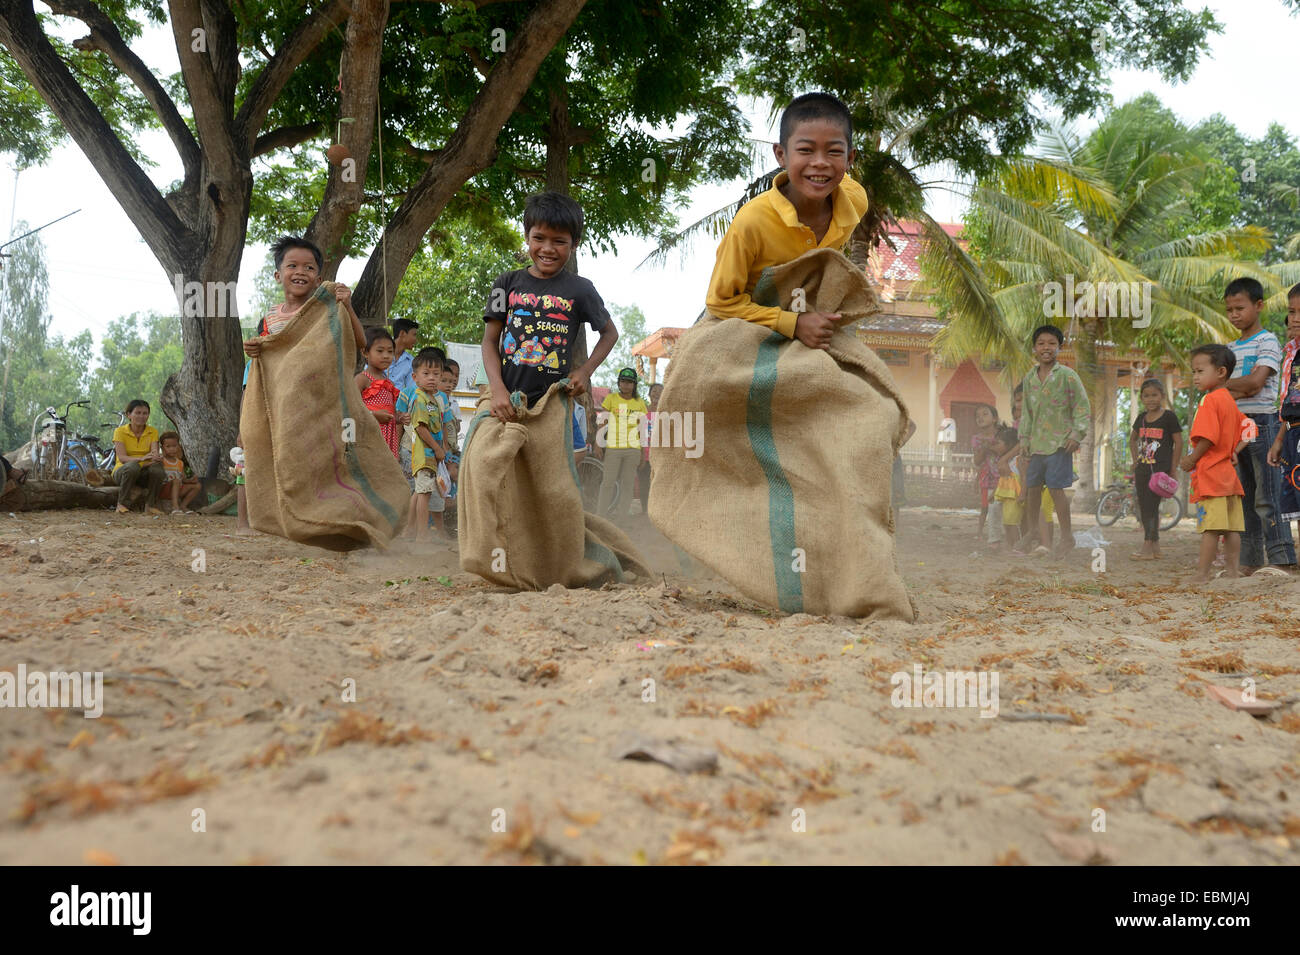 Sack race at a children's party, Prek Chrey Commune, Kandal province, Cambodia - Stock Image